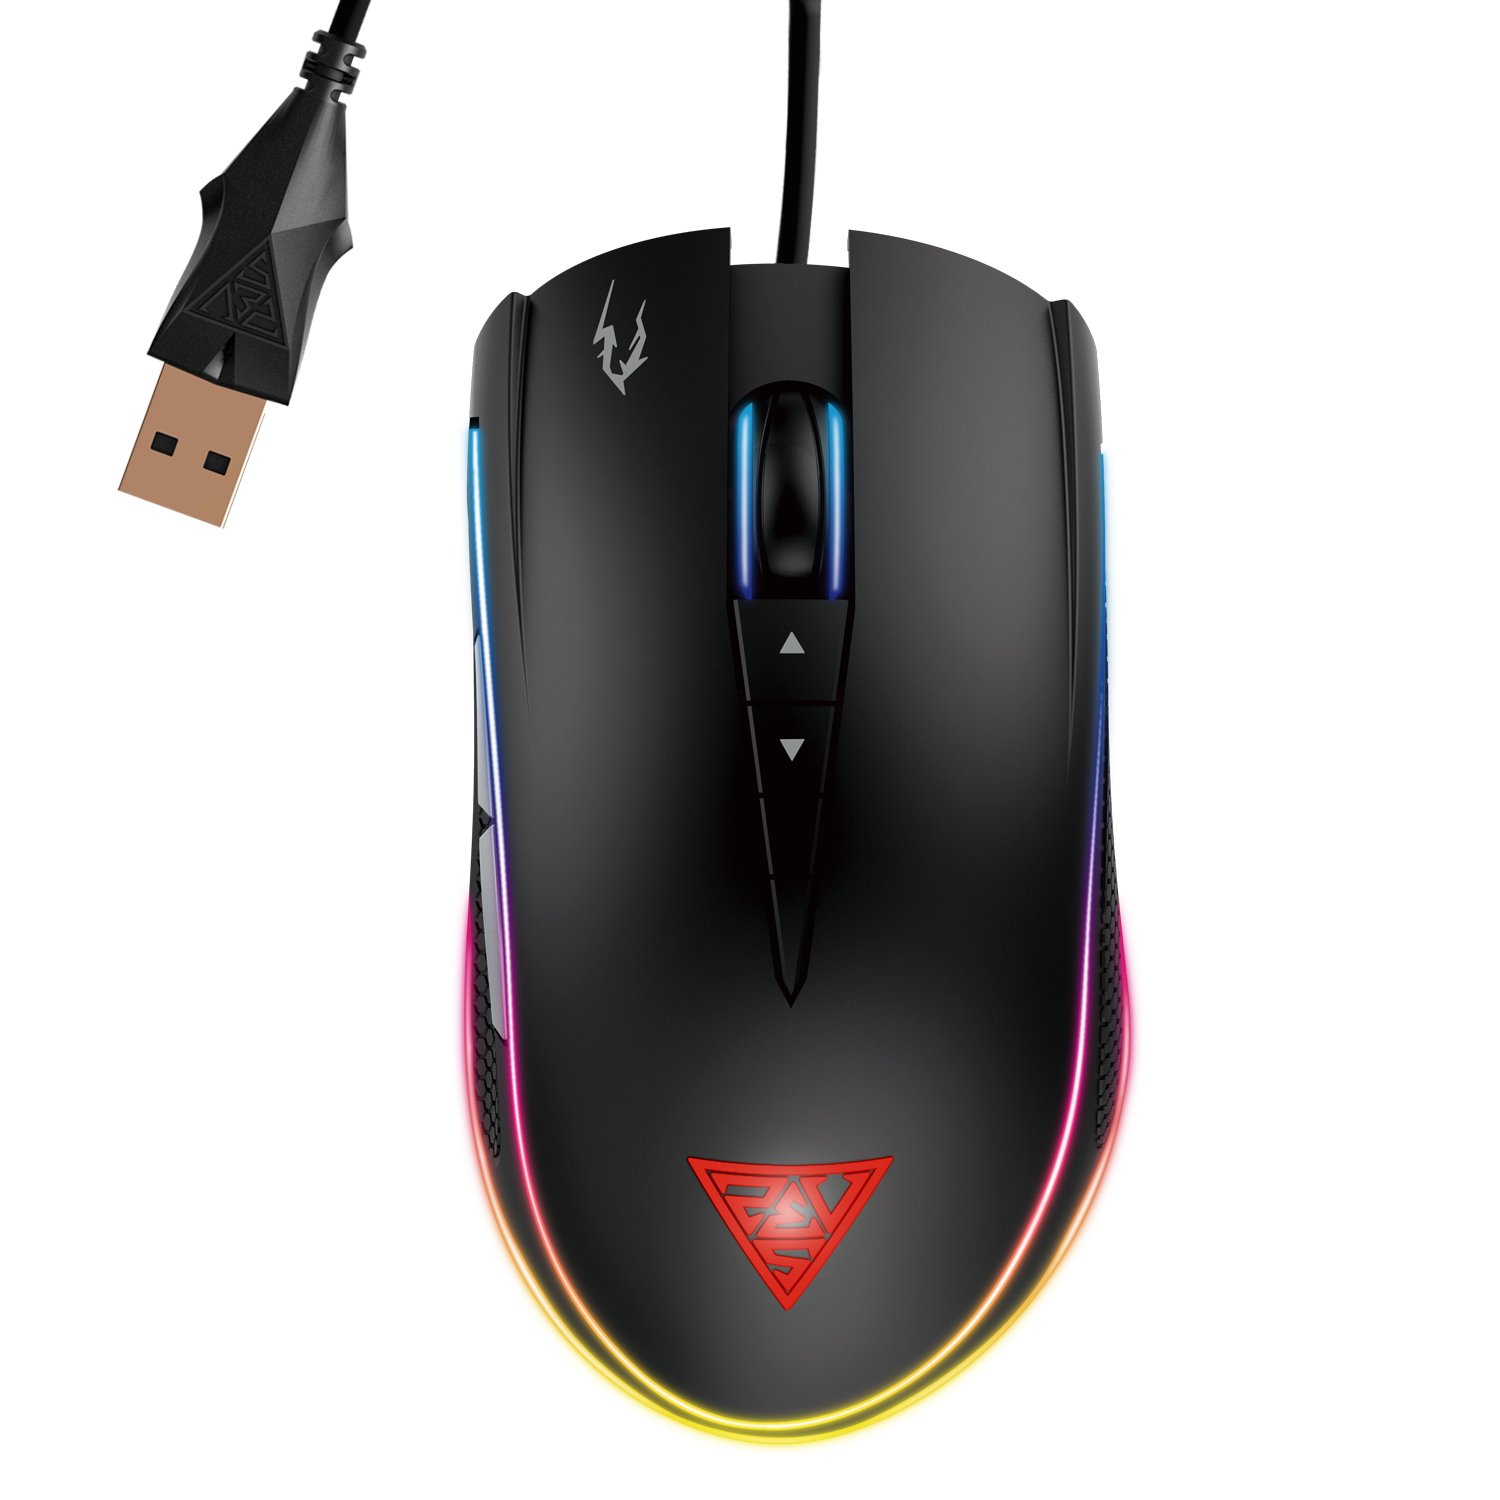 Mouse Gamer :  GAMDIAS Optical with Double RGB Streaming Lig